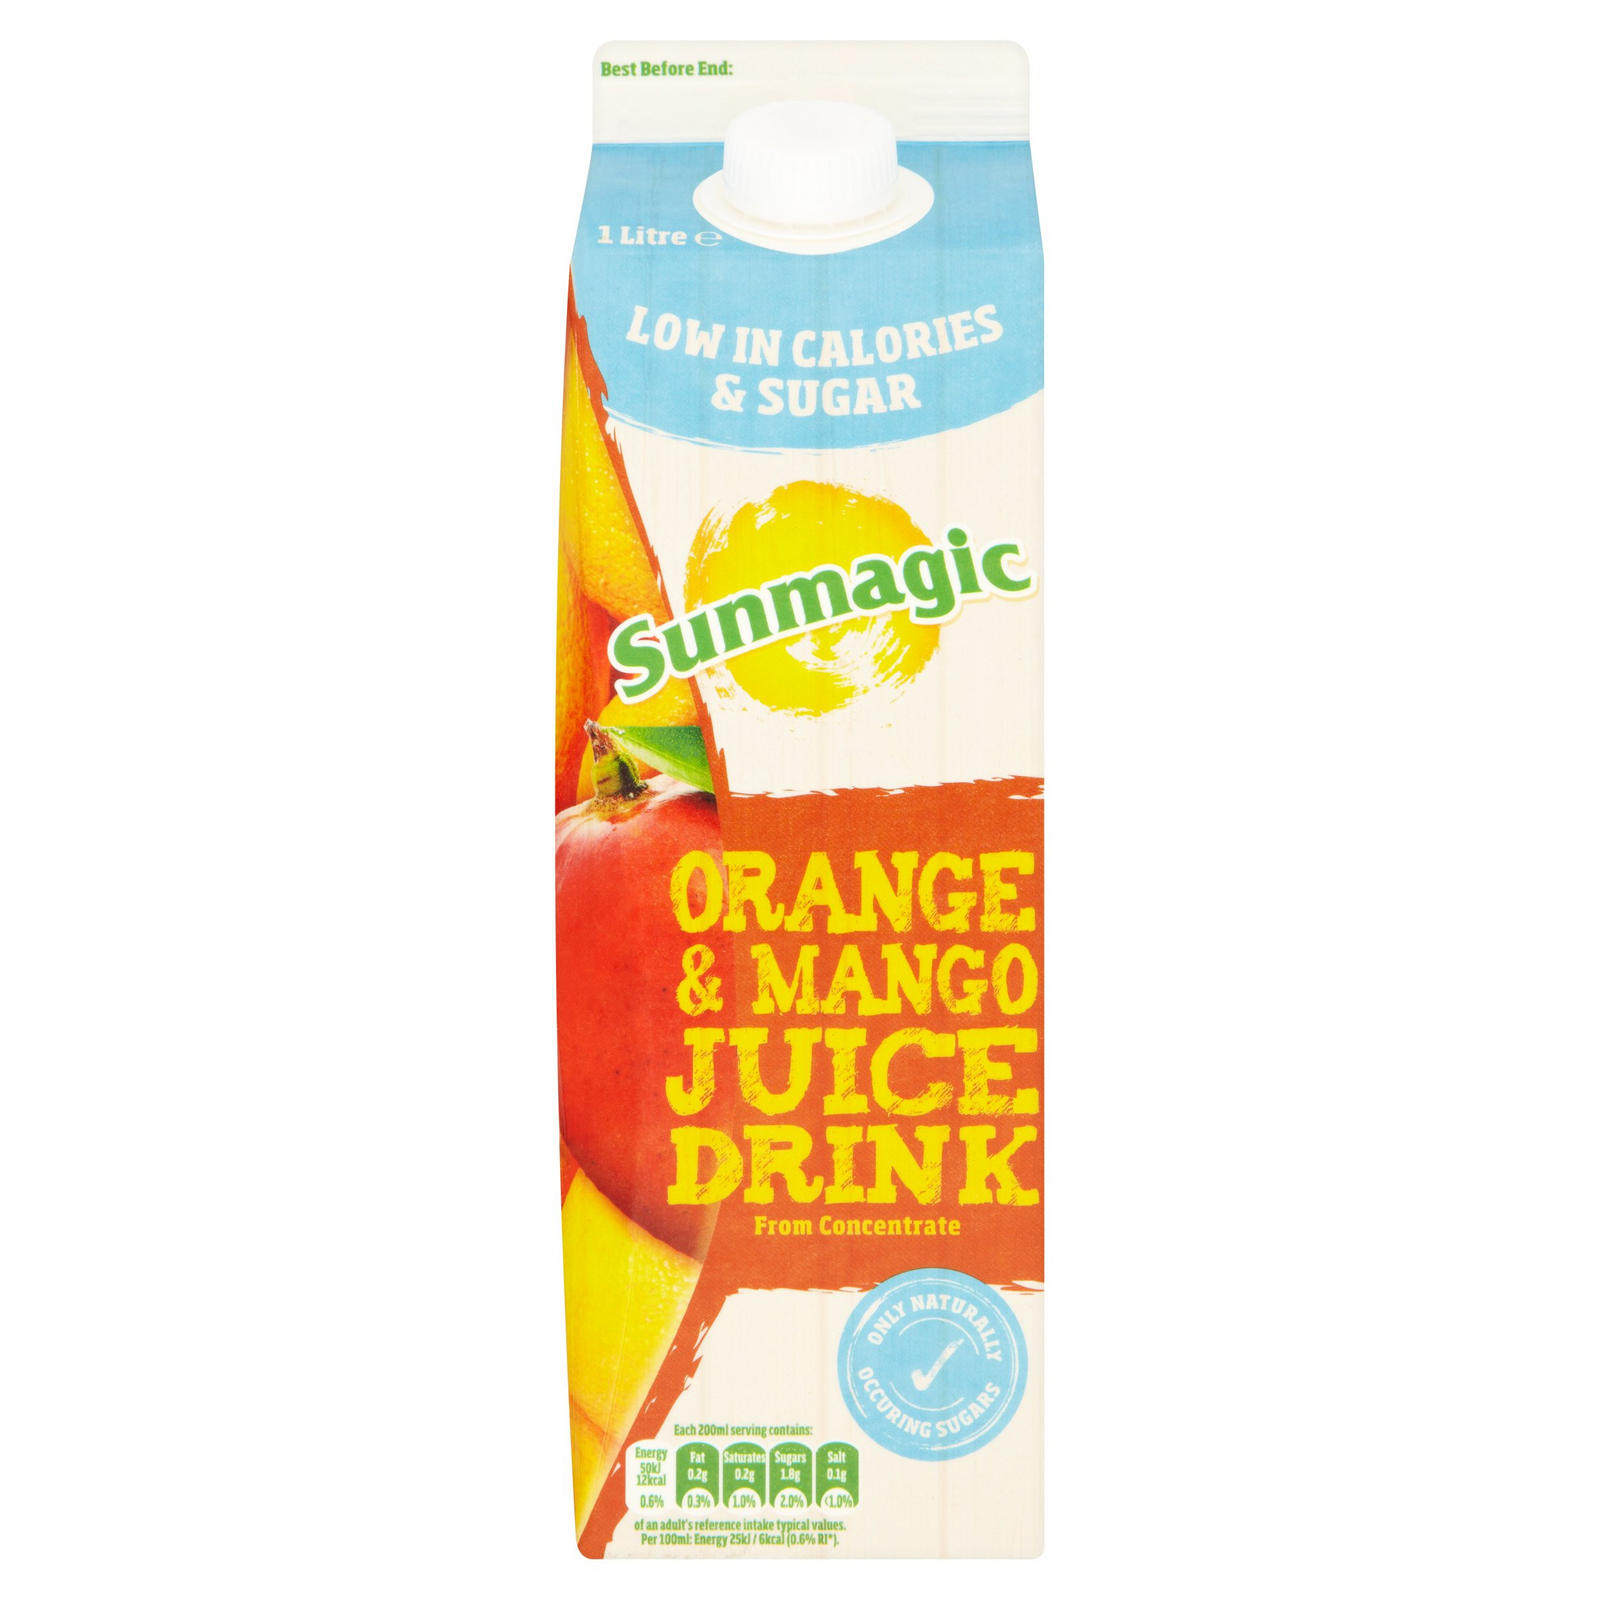 Sunmagic Orange and Mango Juice Drink 1 Litre | Iceland Foods